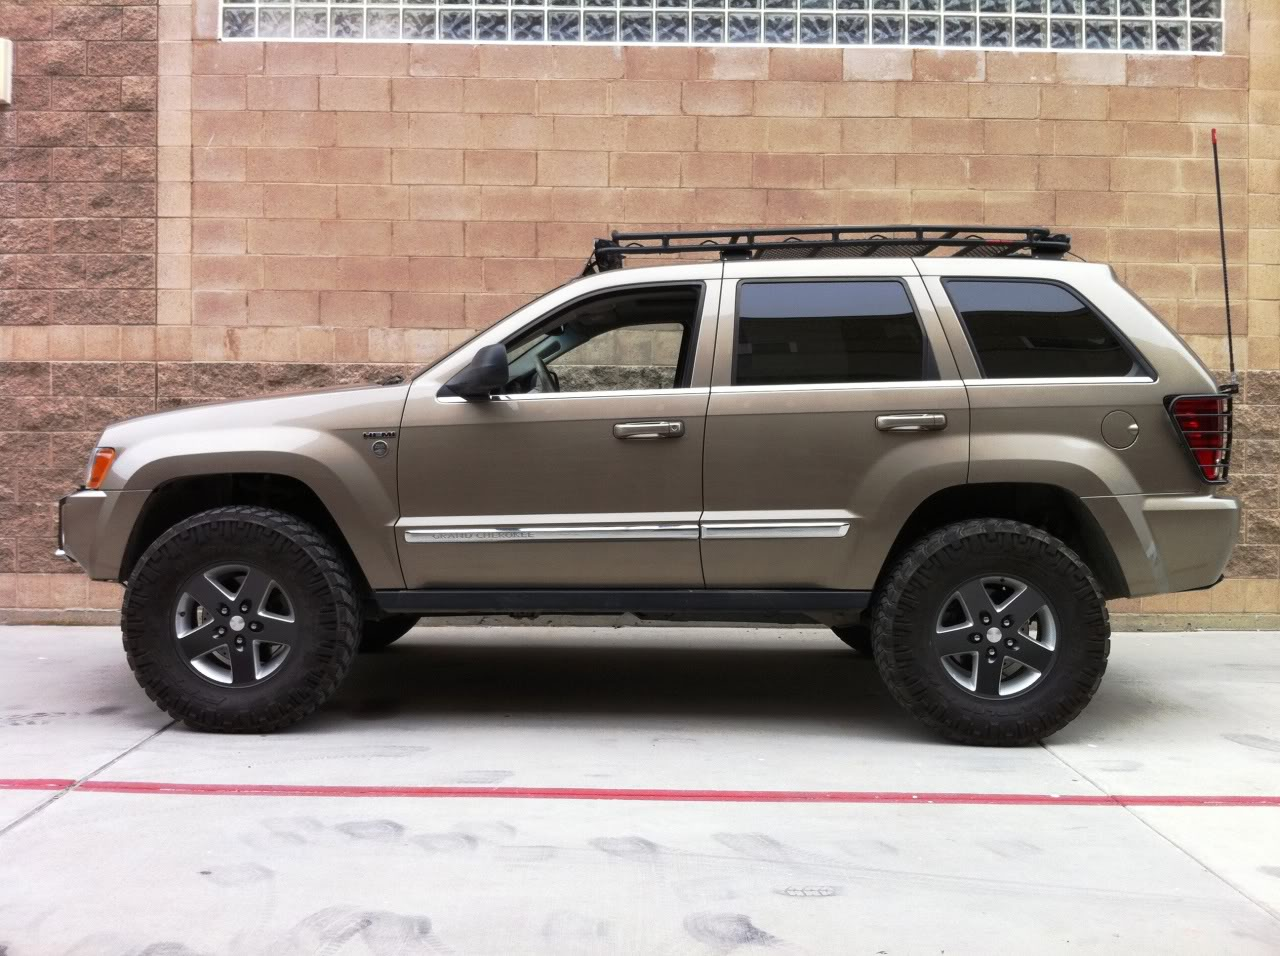 2006 jeep grand cherokee wk pictures information and specs auto. Black Bedroom Furniture Sets. Home Design Ideas